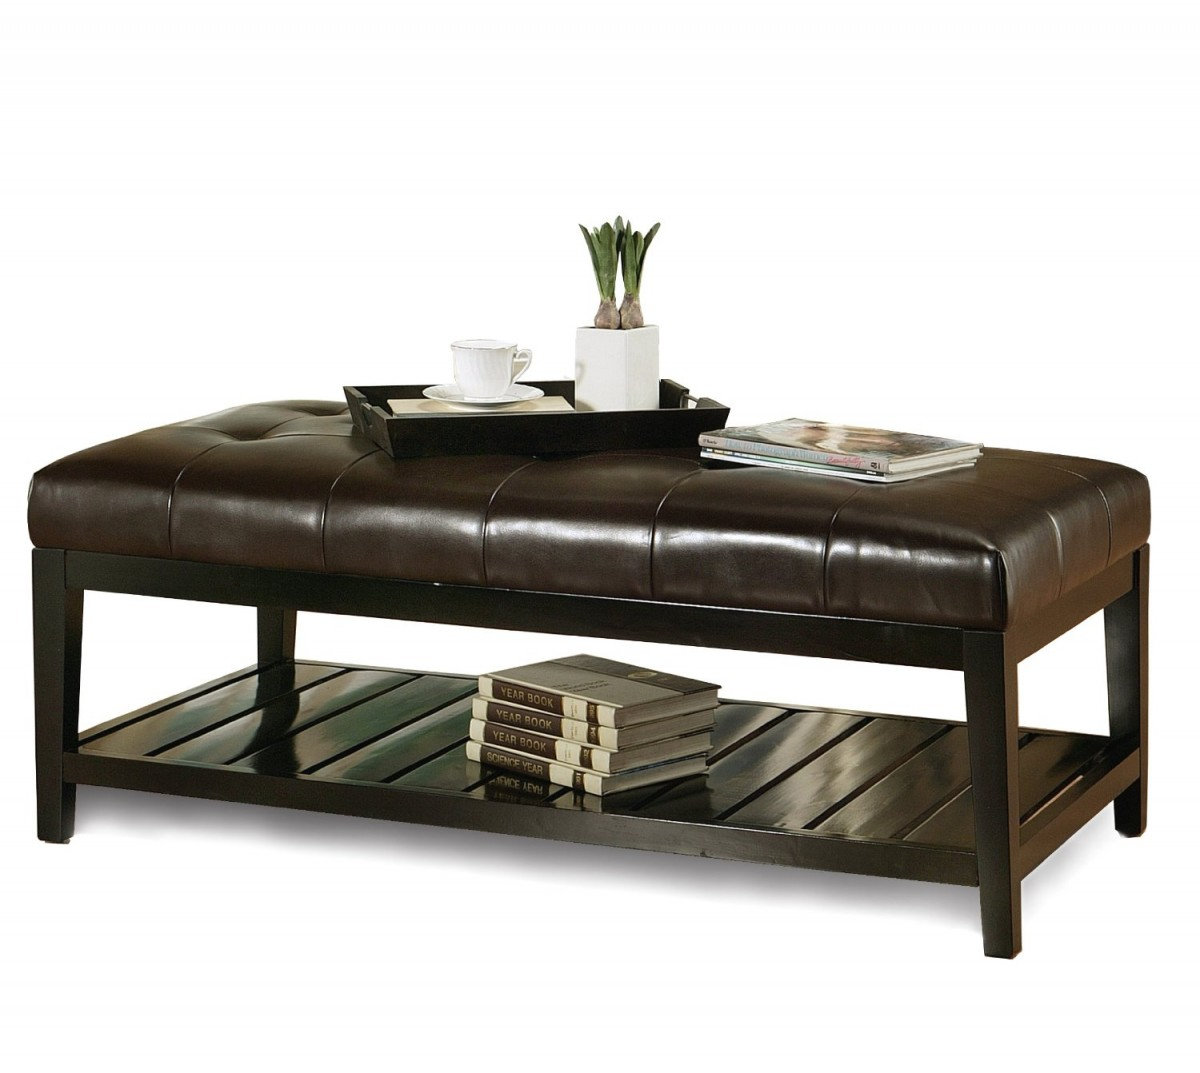 Brown Modern Wood Coffee Table Reclaimed Metal Mid